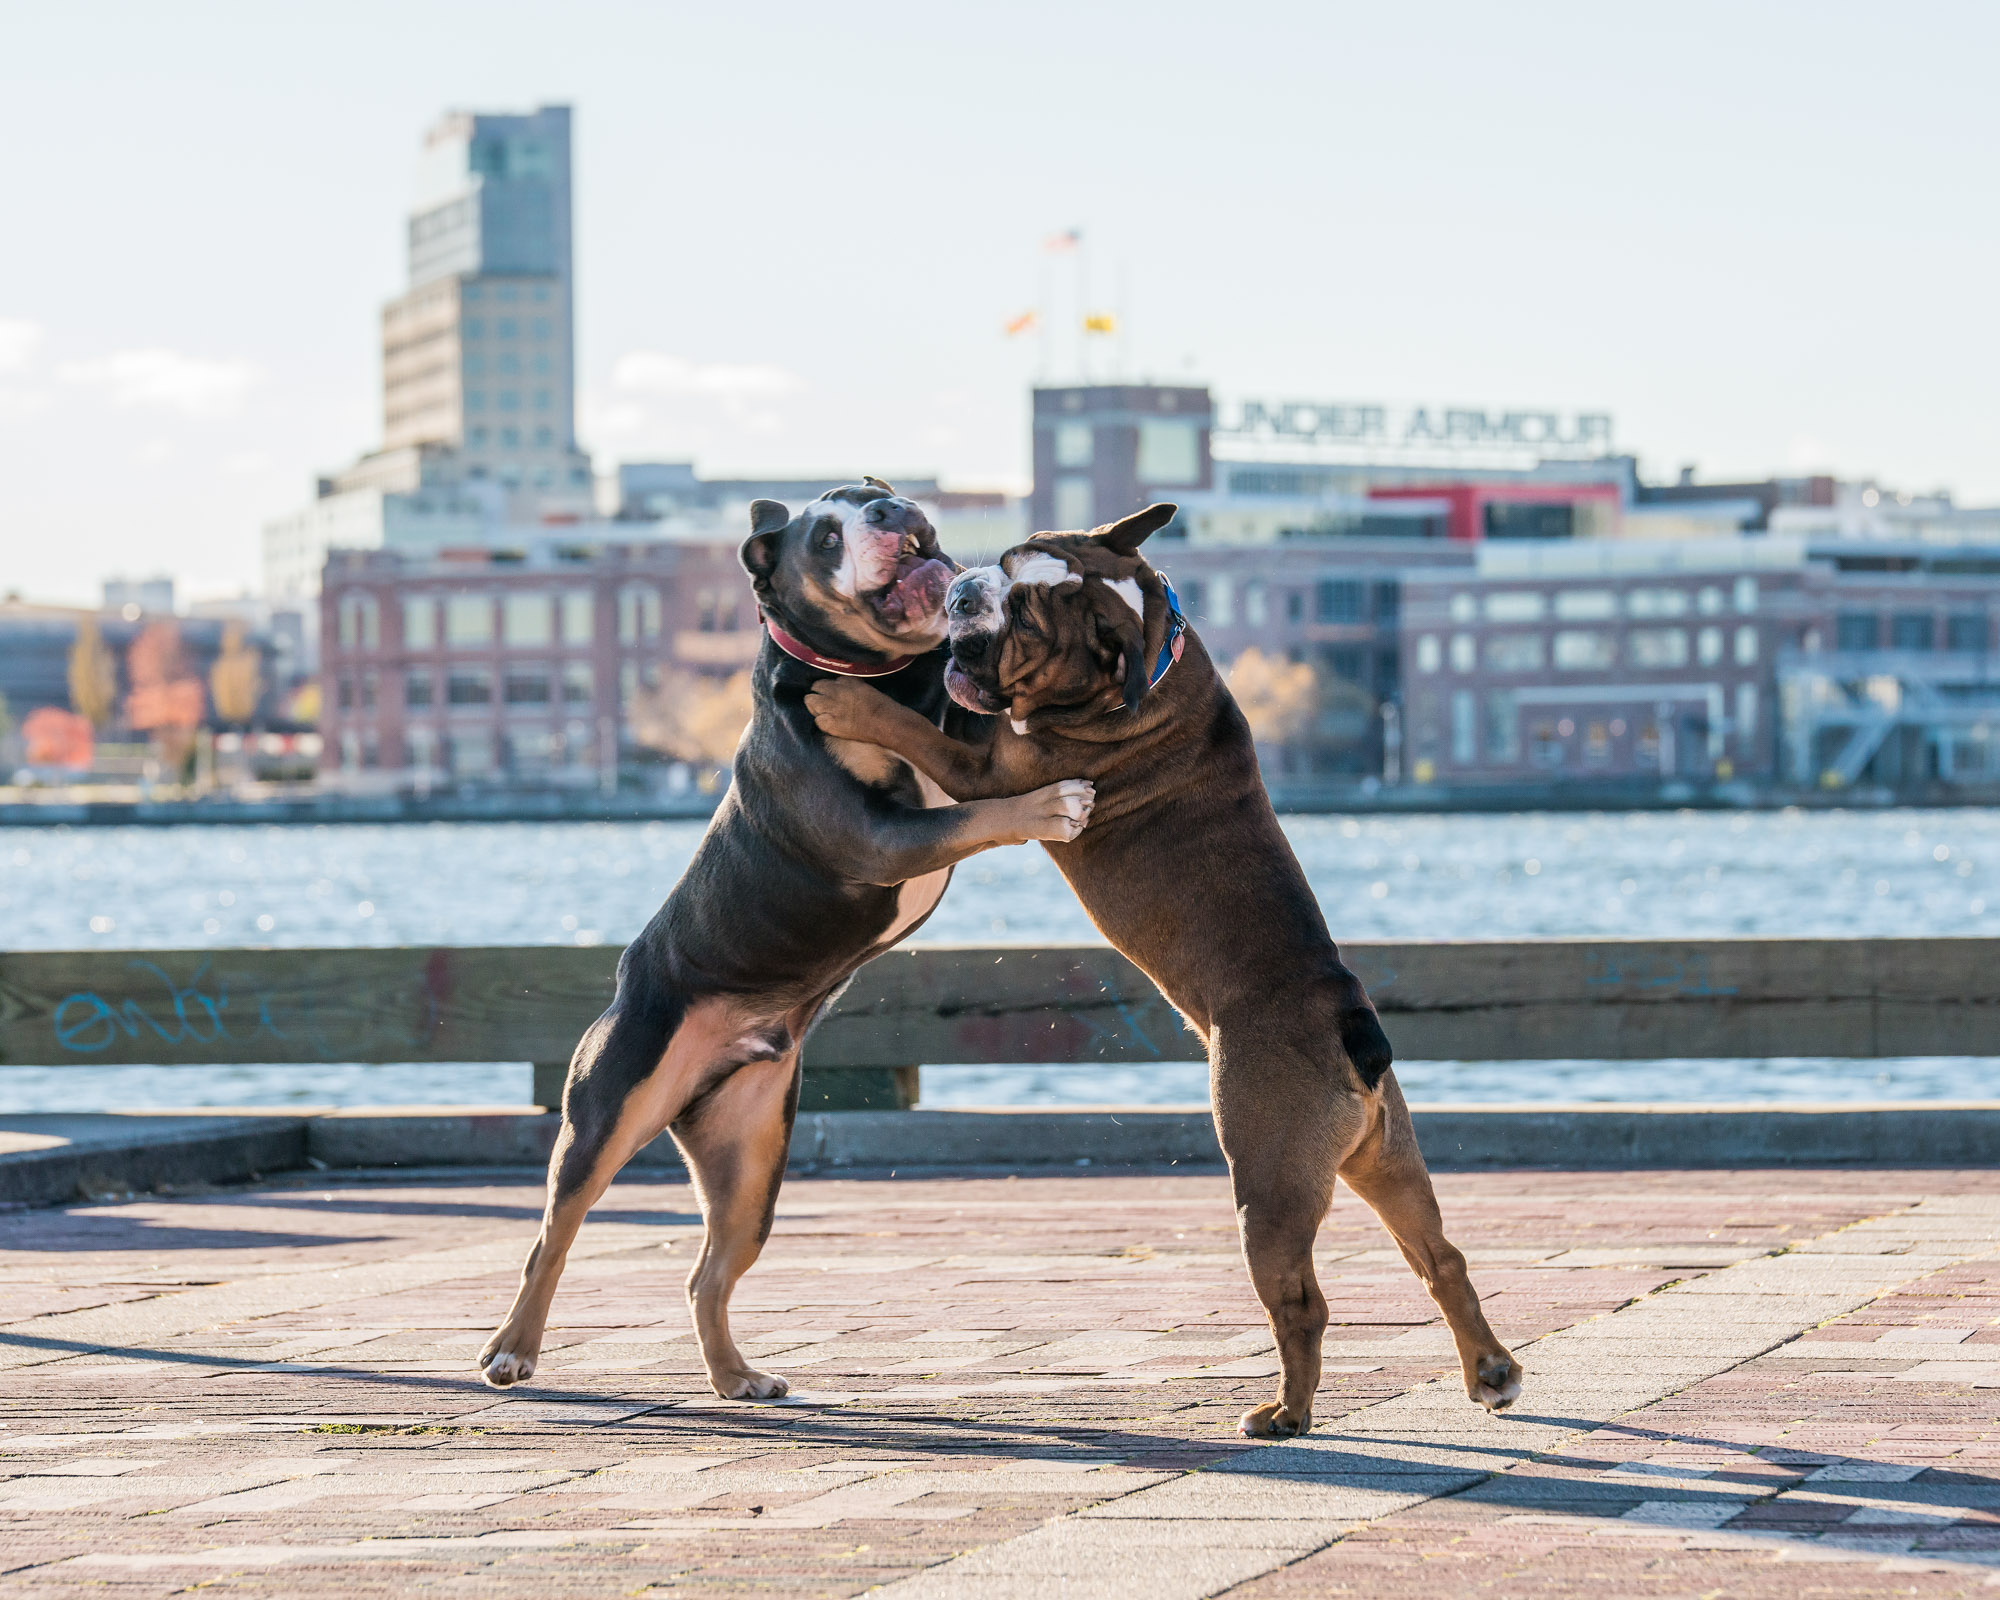 Two Bulldogs - Dogs Playing in Baltimore Maryland